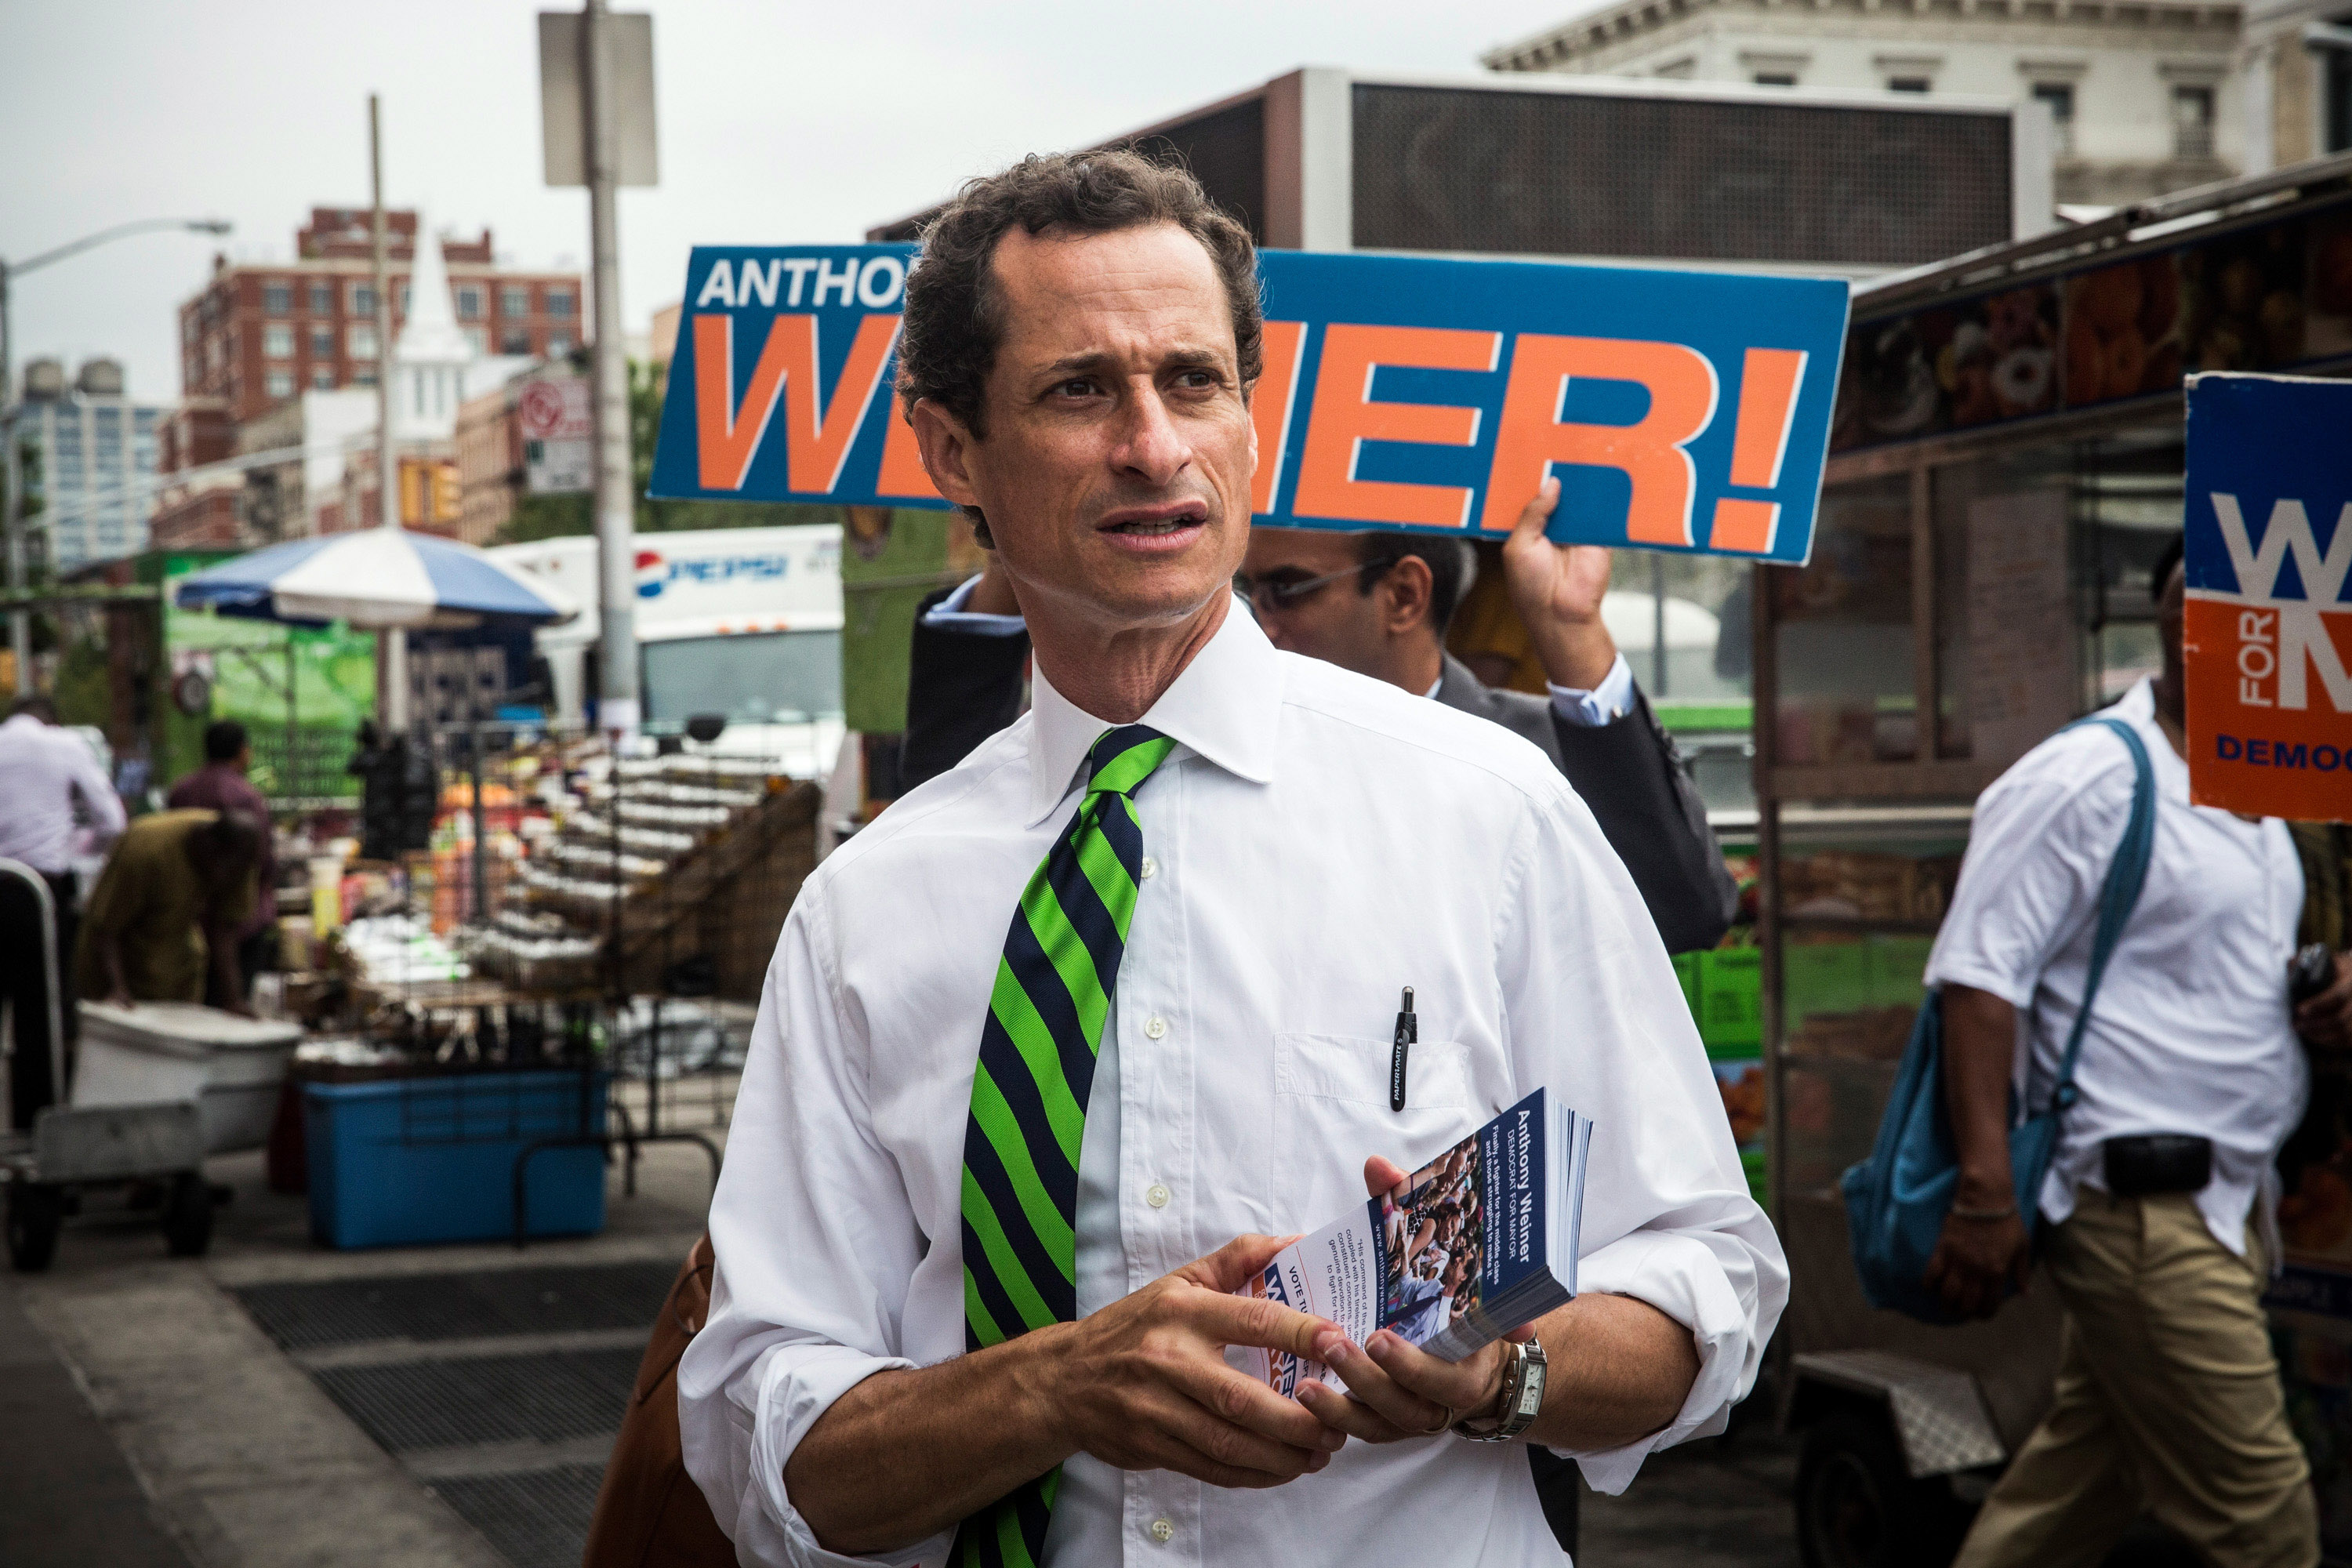 New York City mayoral hopeful Anthony Weiner meets with people on a street corner In Harlem on September 10, 2013 in New York City. Registered voters in New York are voting today in the Democratic and Republican primary races to nominate party candidates for the New York mayoral race. (Getty Images)